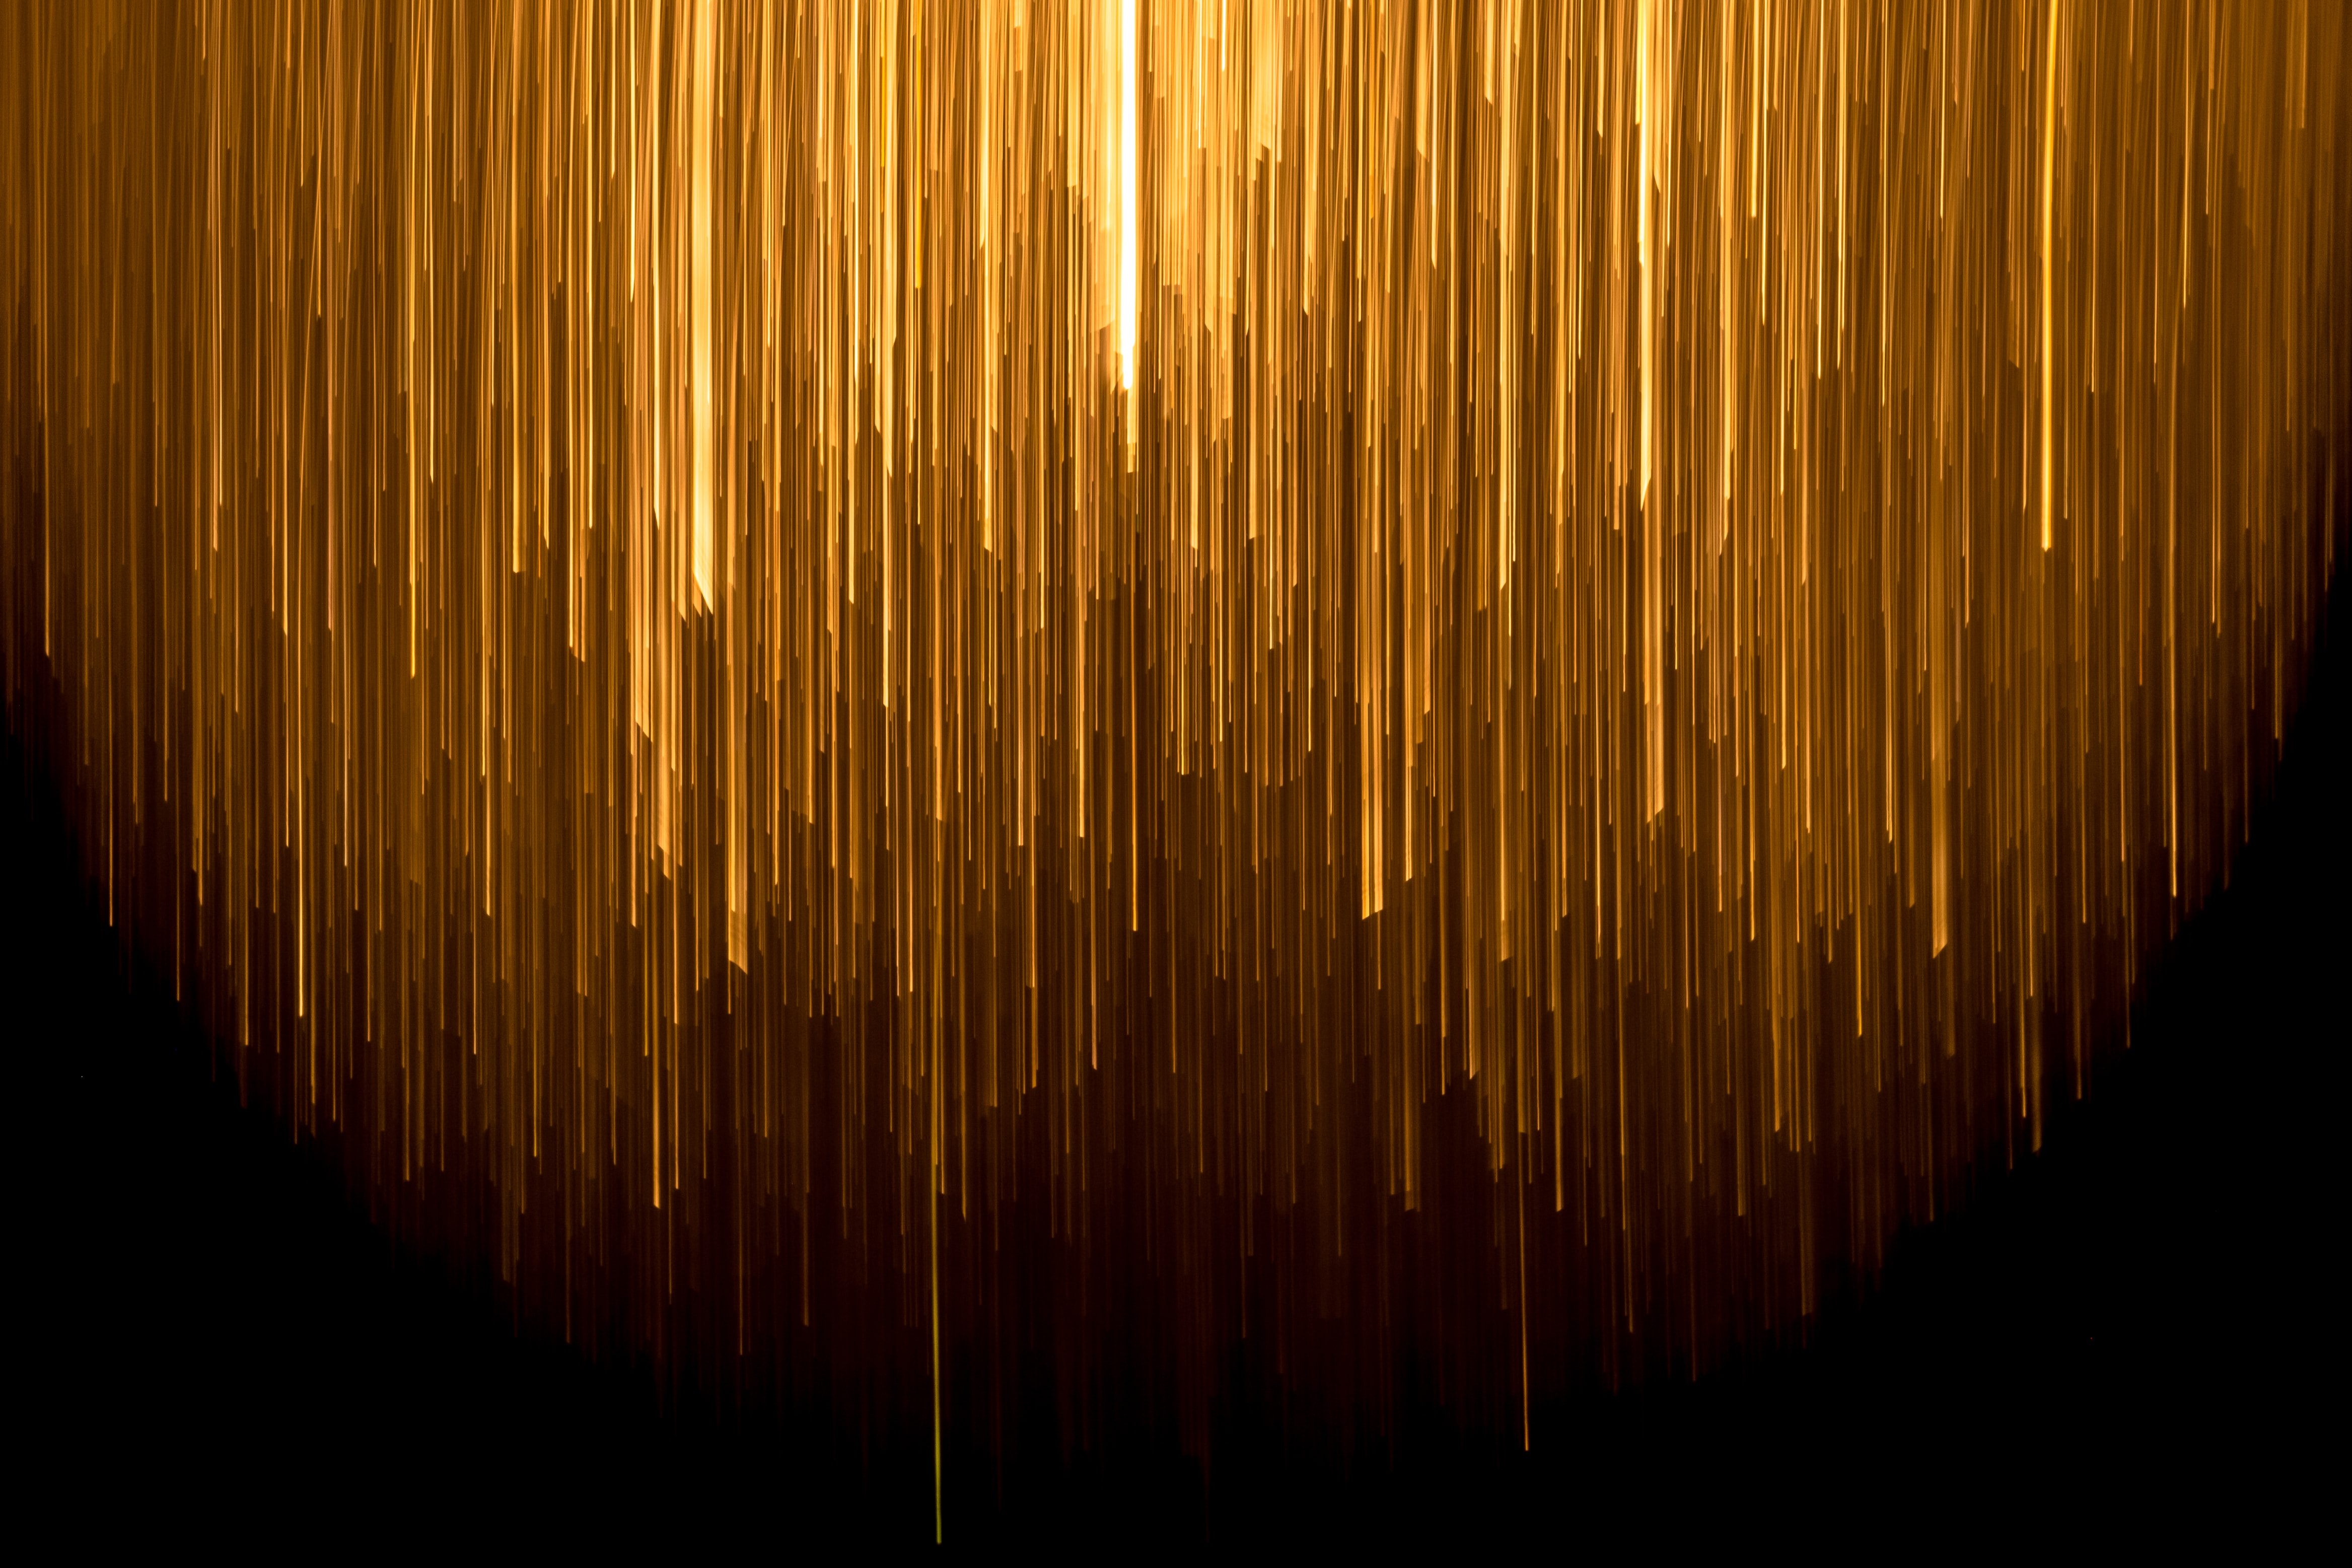 Abstract image of light falling from above